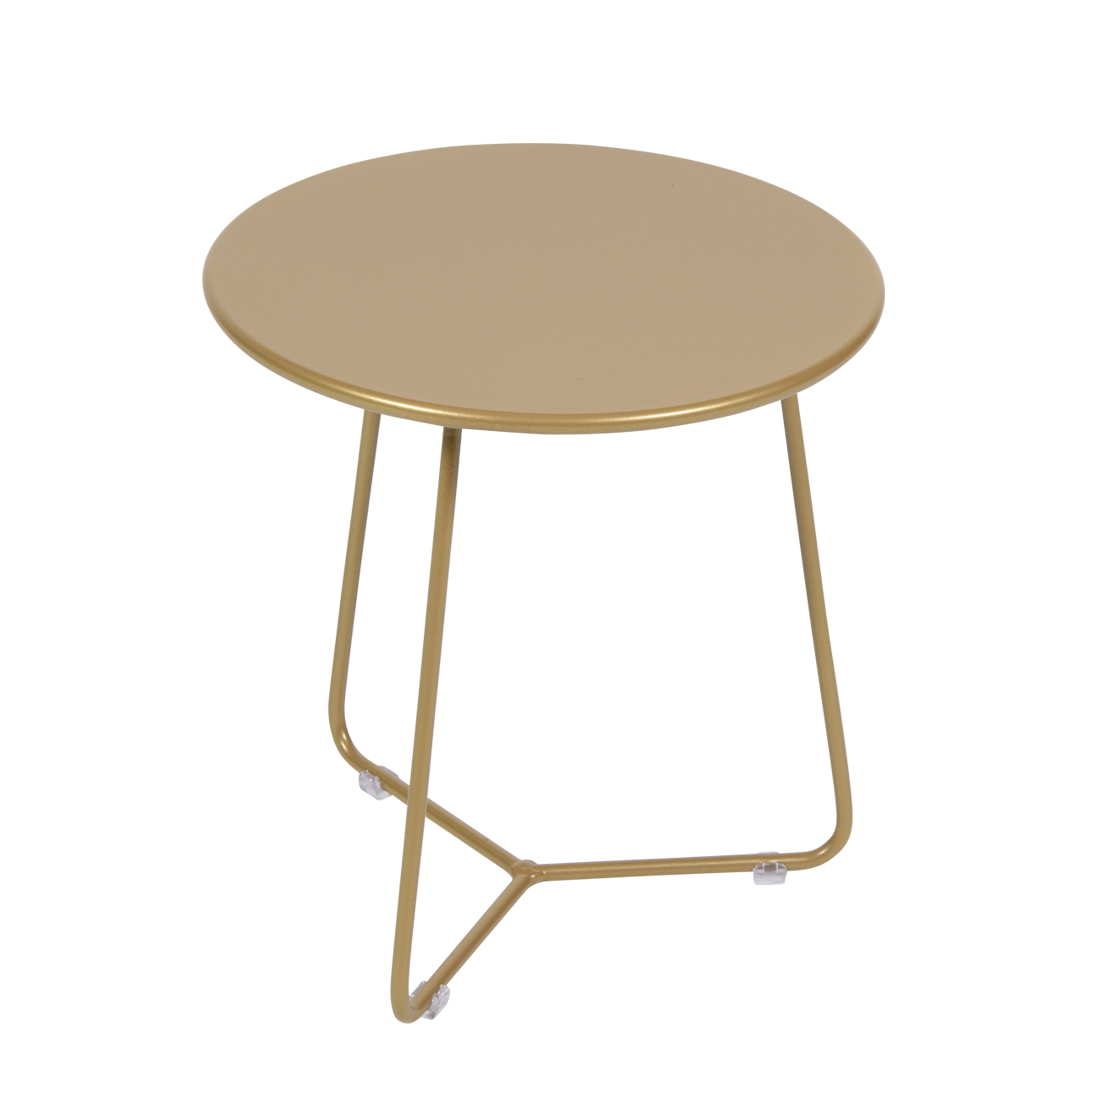 Table D Appoint Cocotte Gold Fever Table Basse Tabouret Bas Metal Table D Appoint Tabouret Bas Table Basse D Appoint